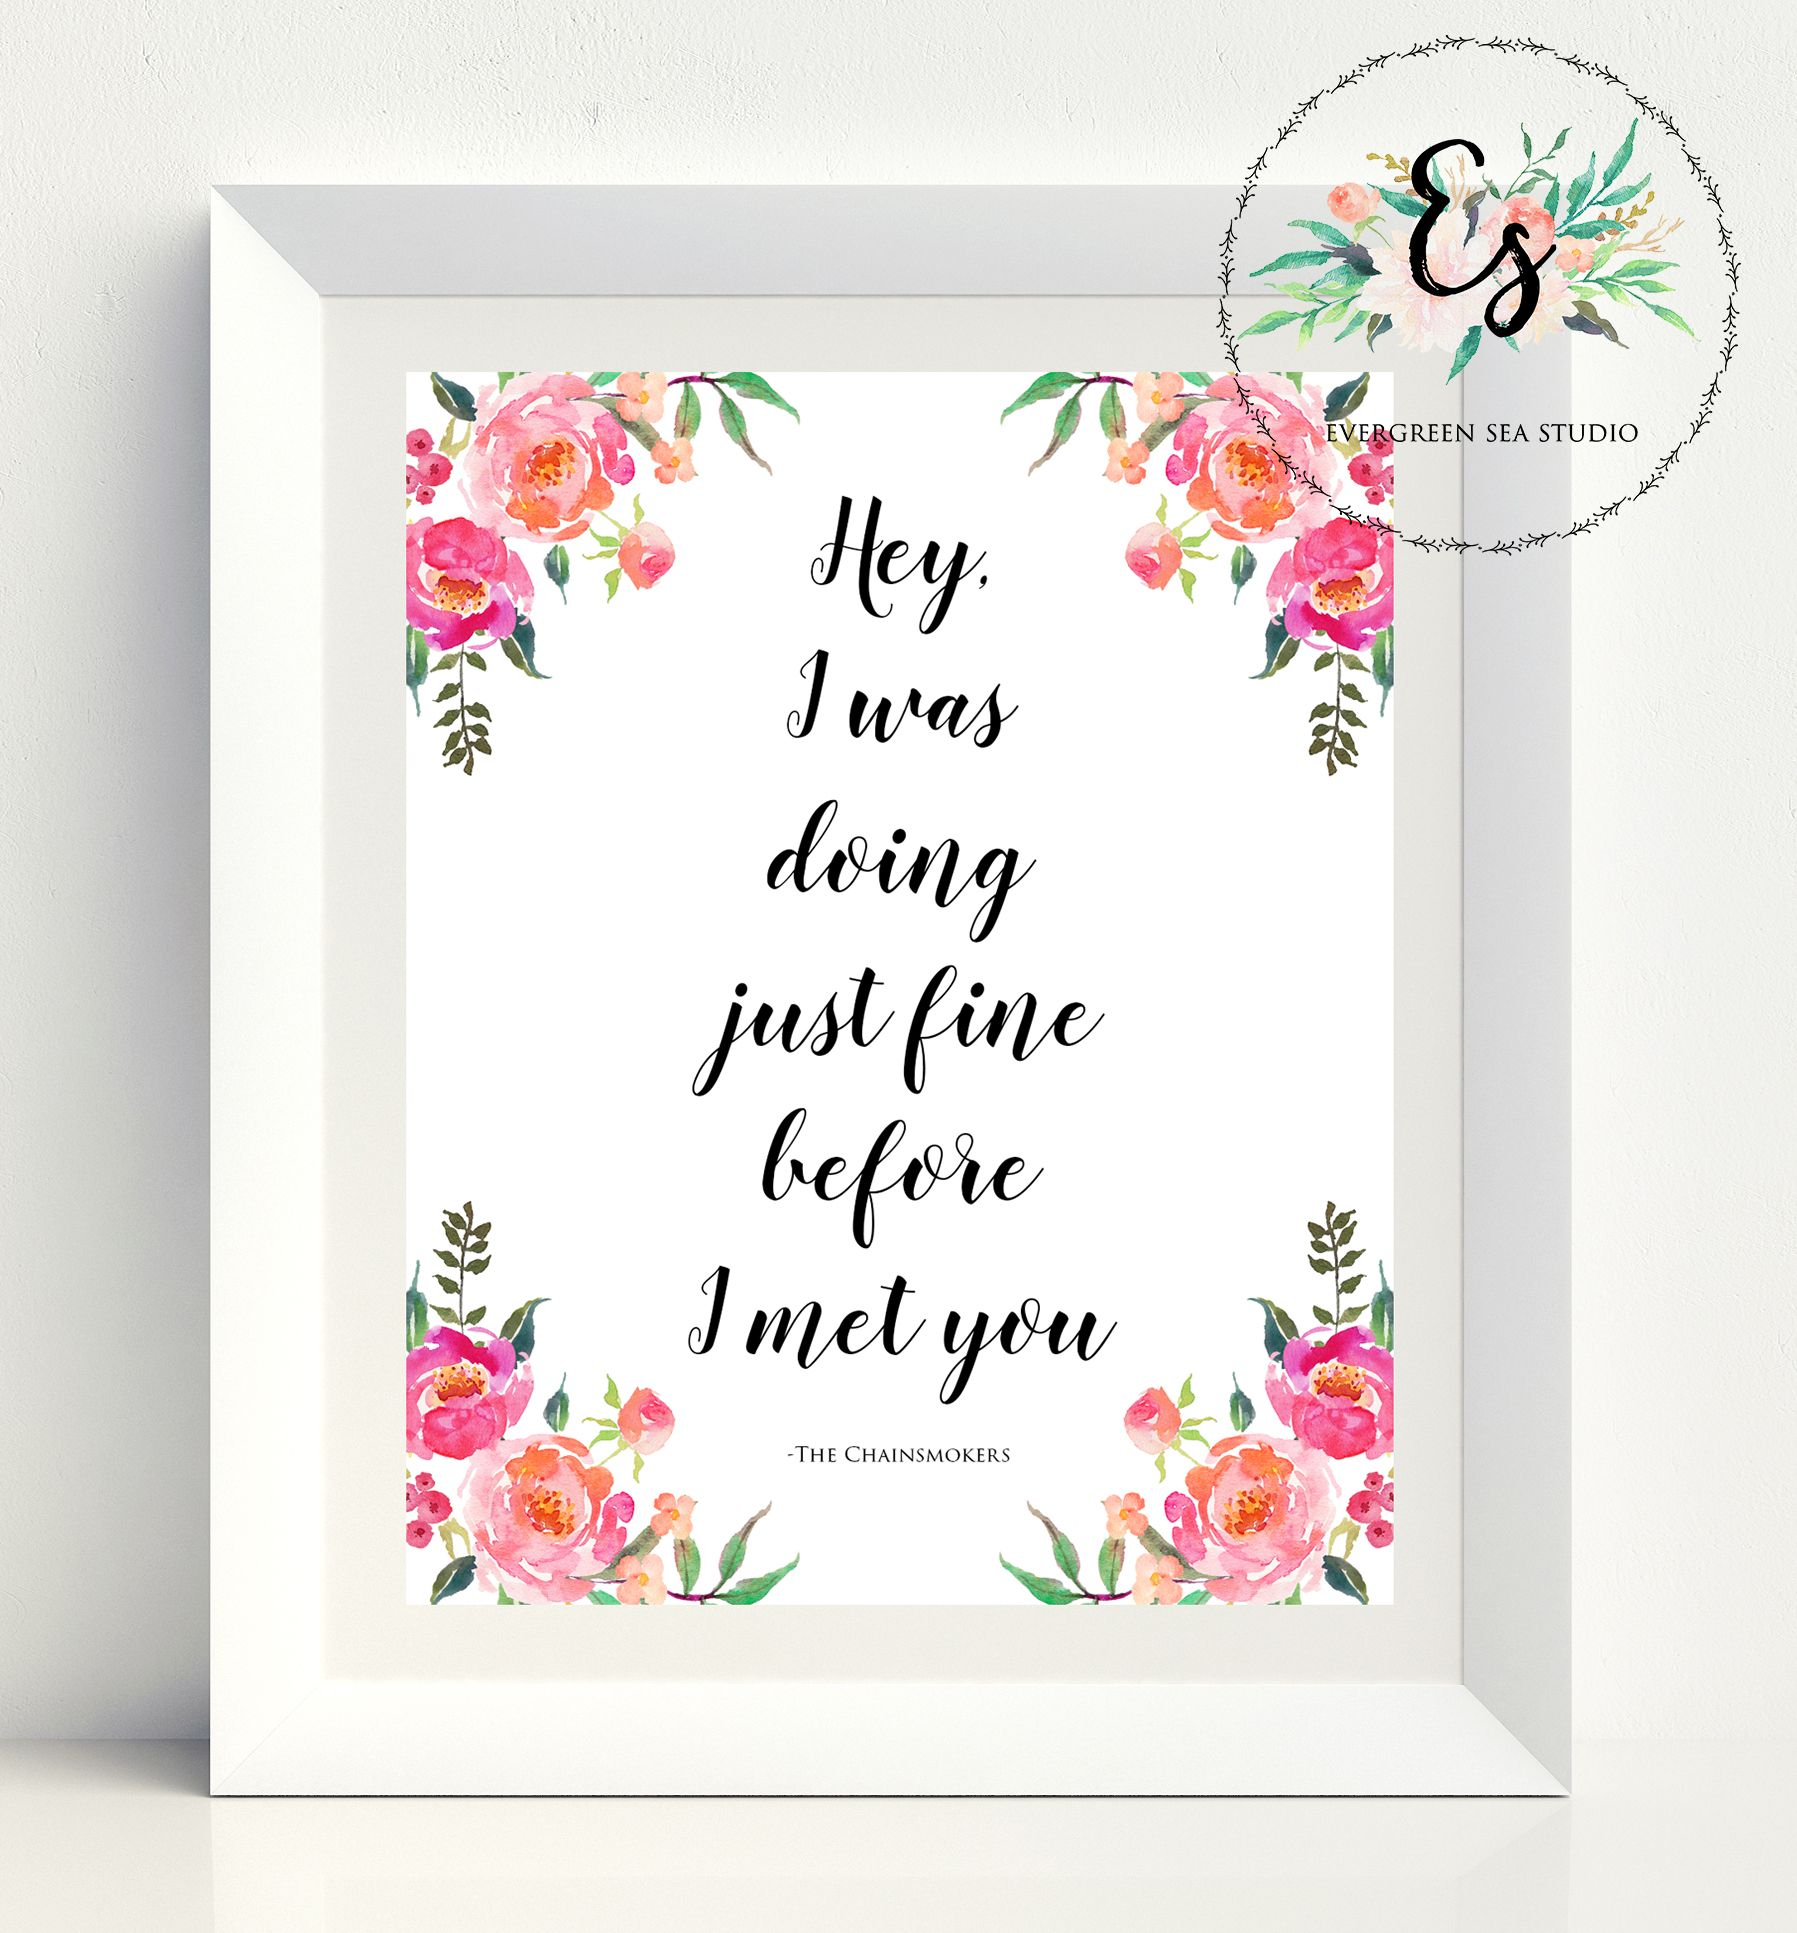 The Chainsmokers Closer Lyrics Quote Print // Artist The